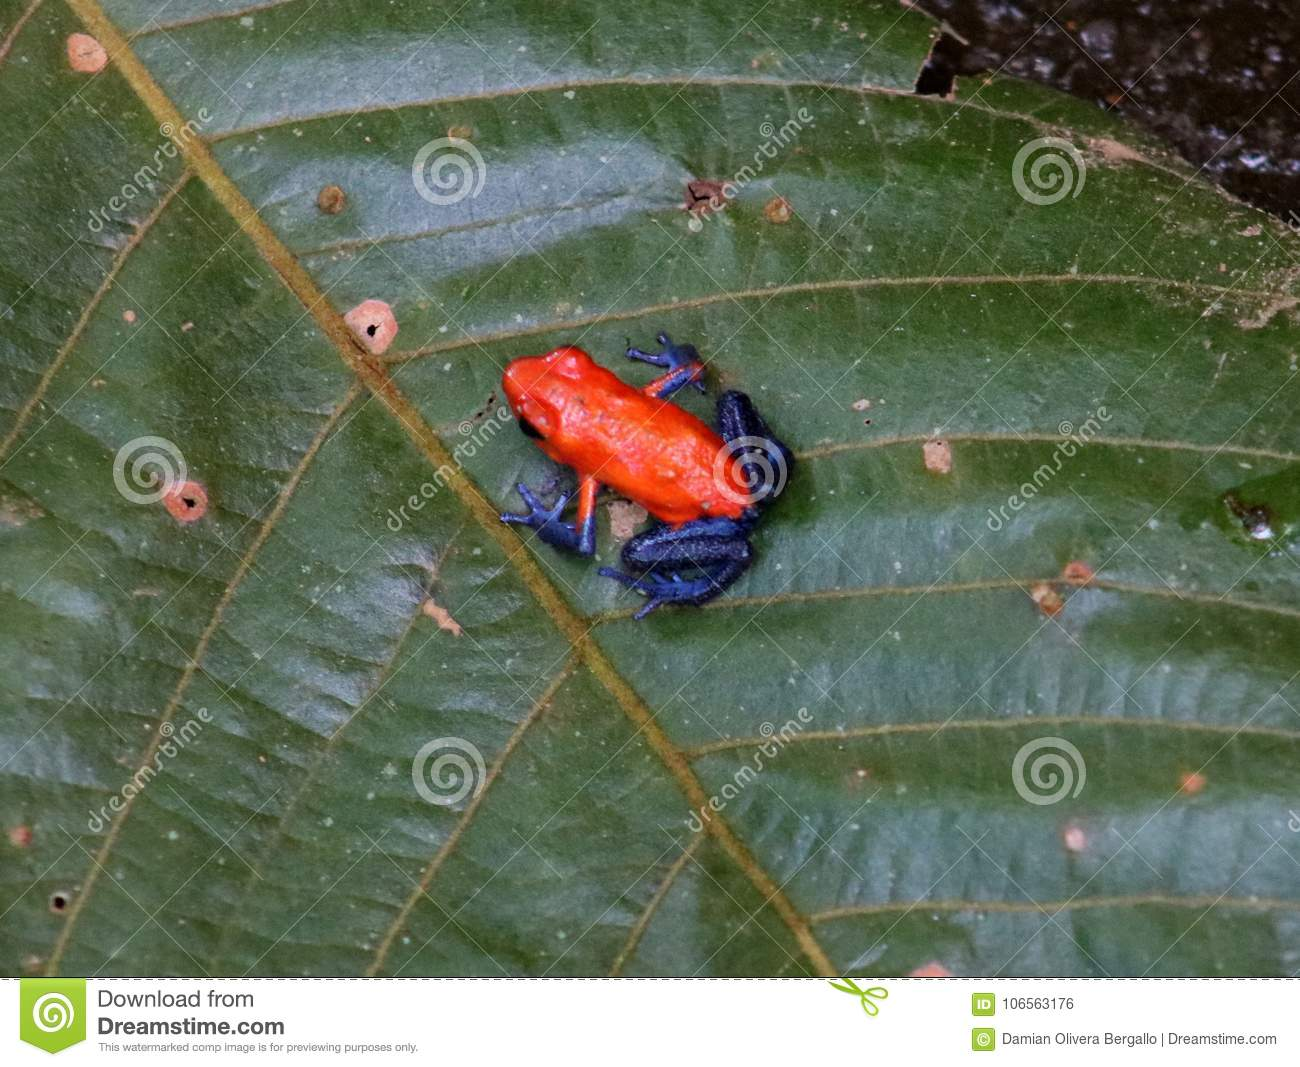 Blue jeans dart frog red Costa Rican frog